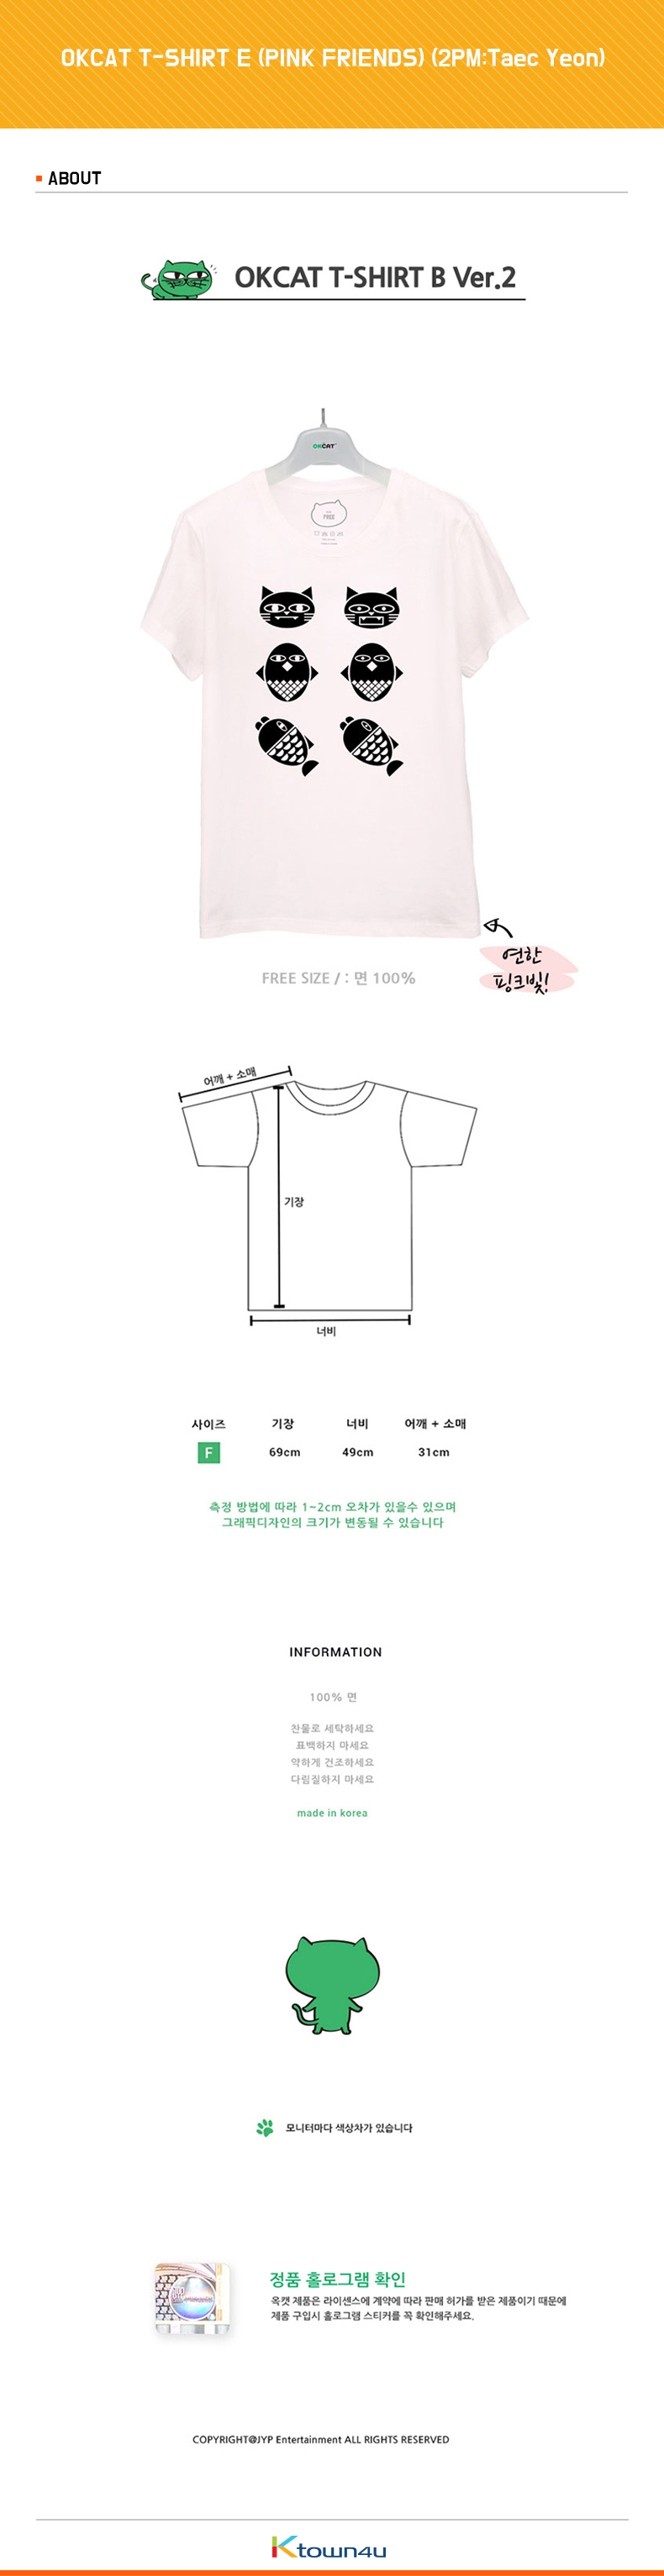 OKCAT T-SHIRT E (PINK FRIENDS) (2PM:Taec Yeon)